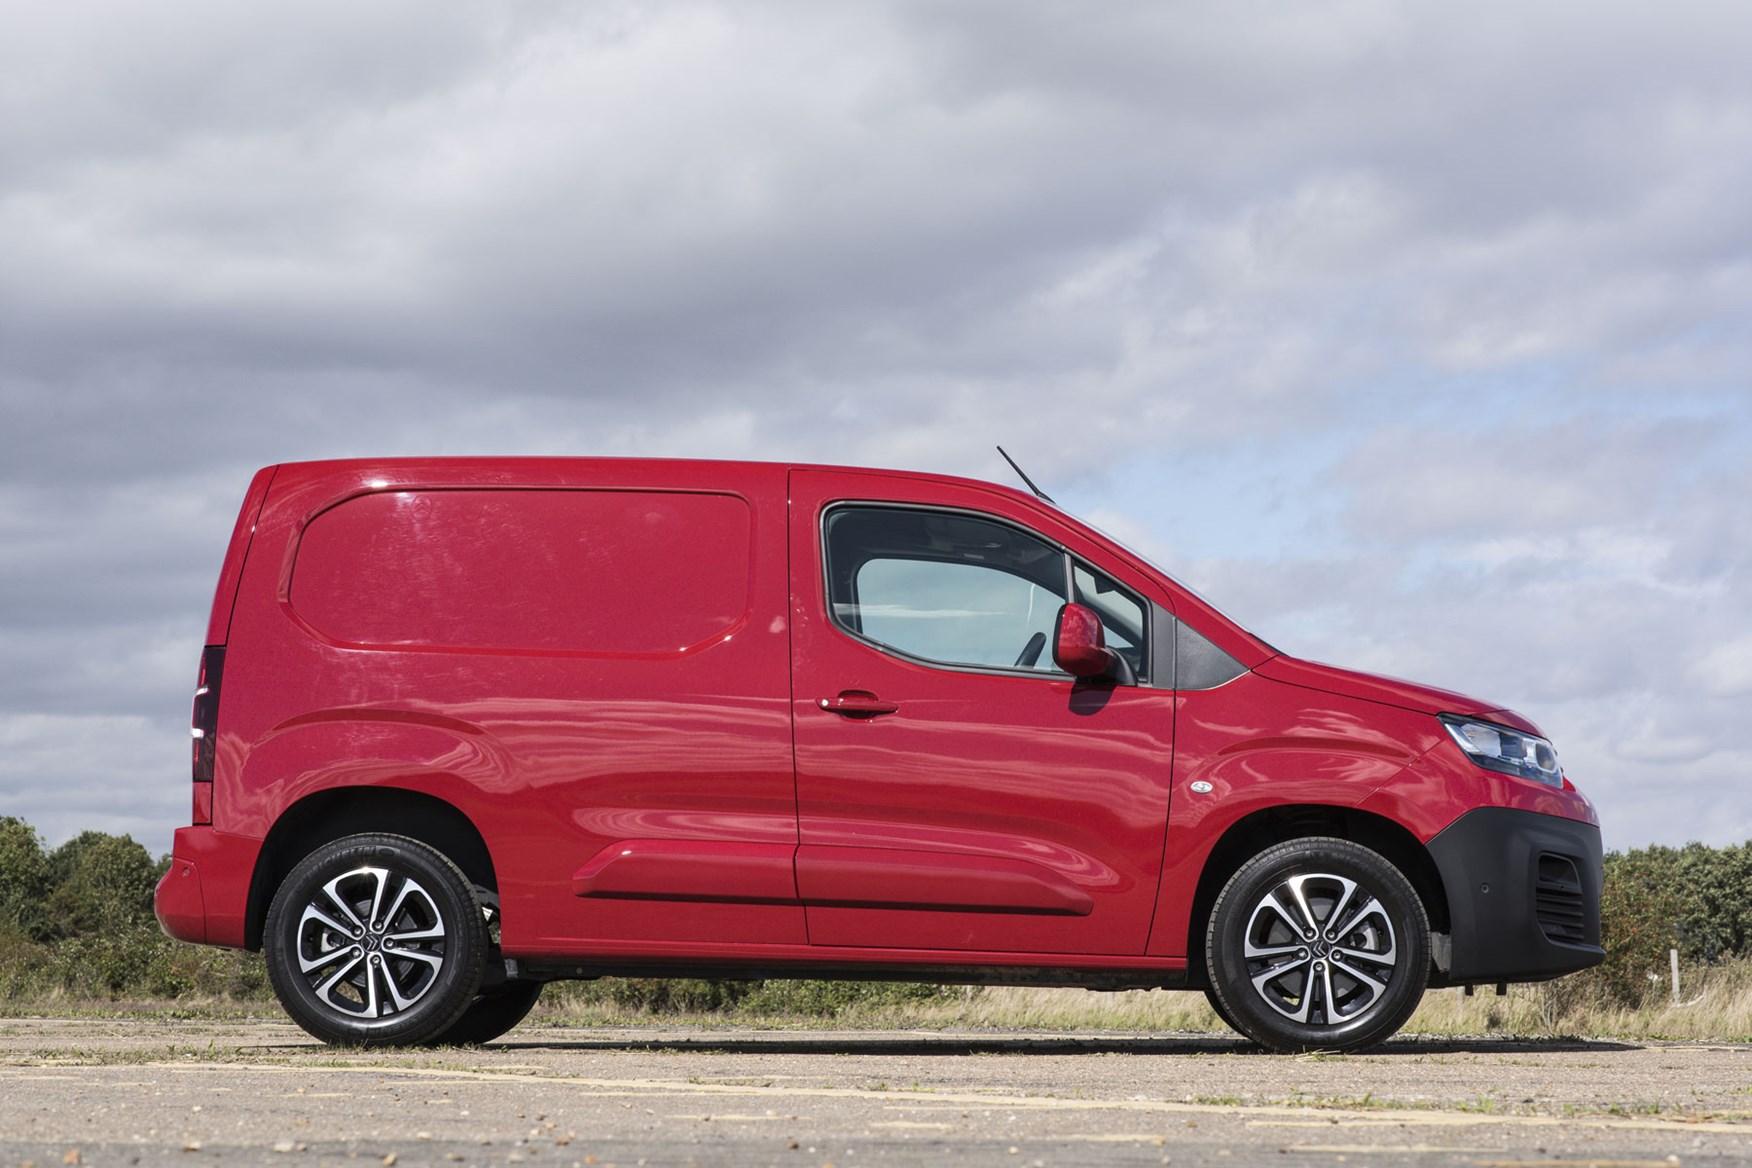 Citroen Berlingo van review - 2019 model, side view, red